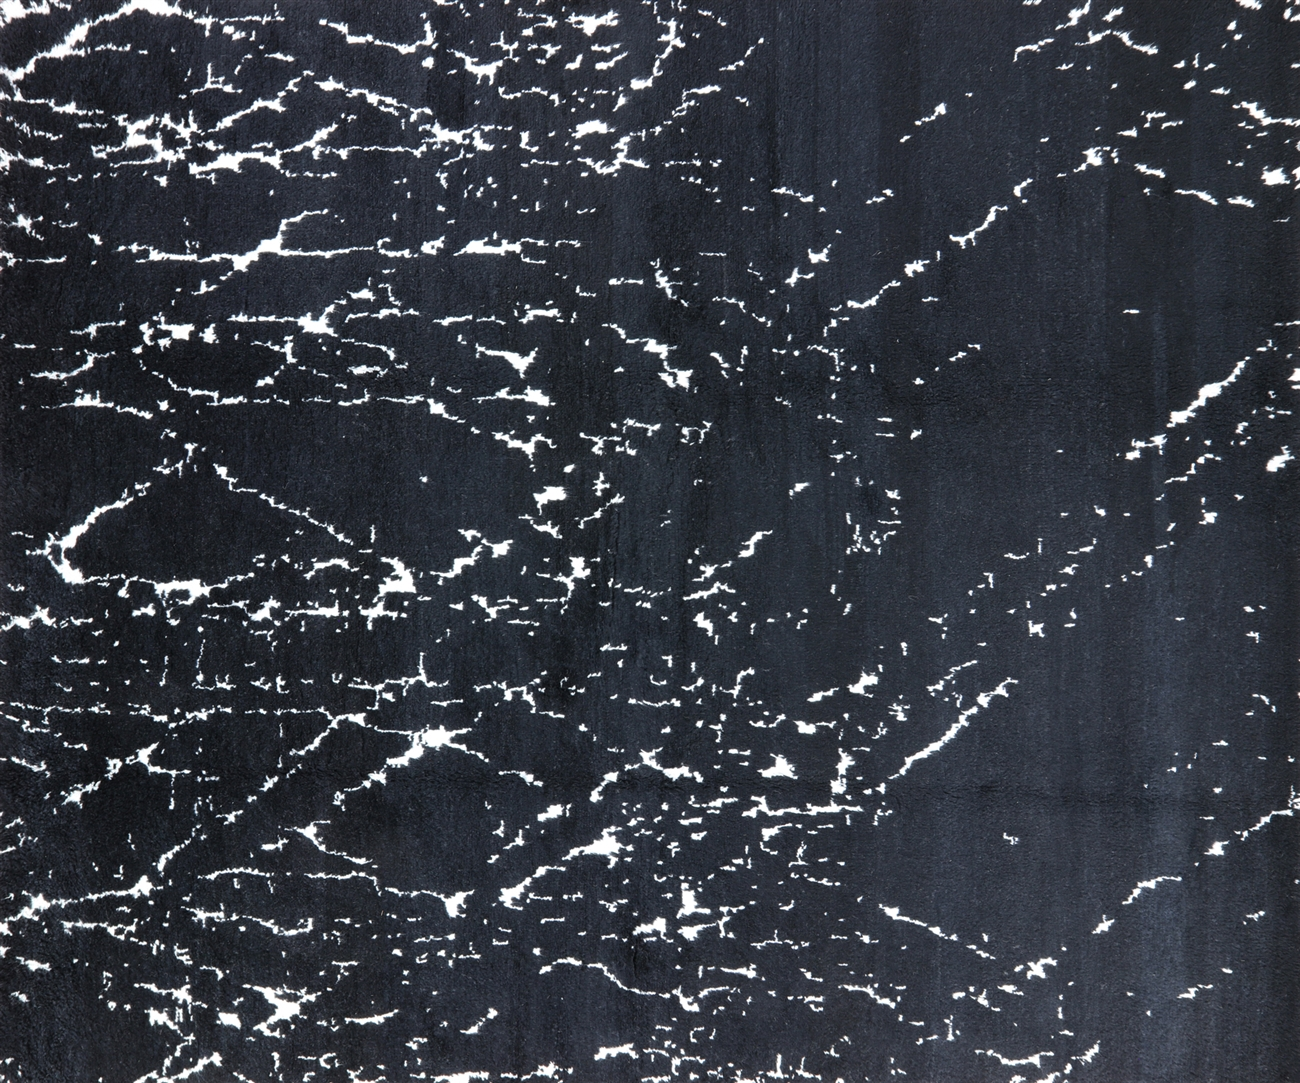 Unique Splatter Design Black 9u0027x10u0027 Moroccan Hand Knotted Wool Area Rug  H8858